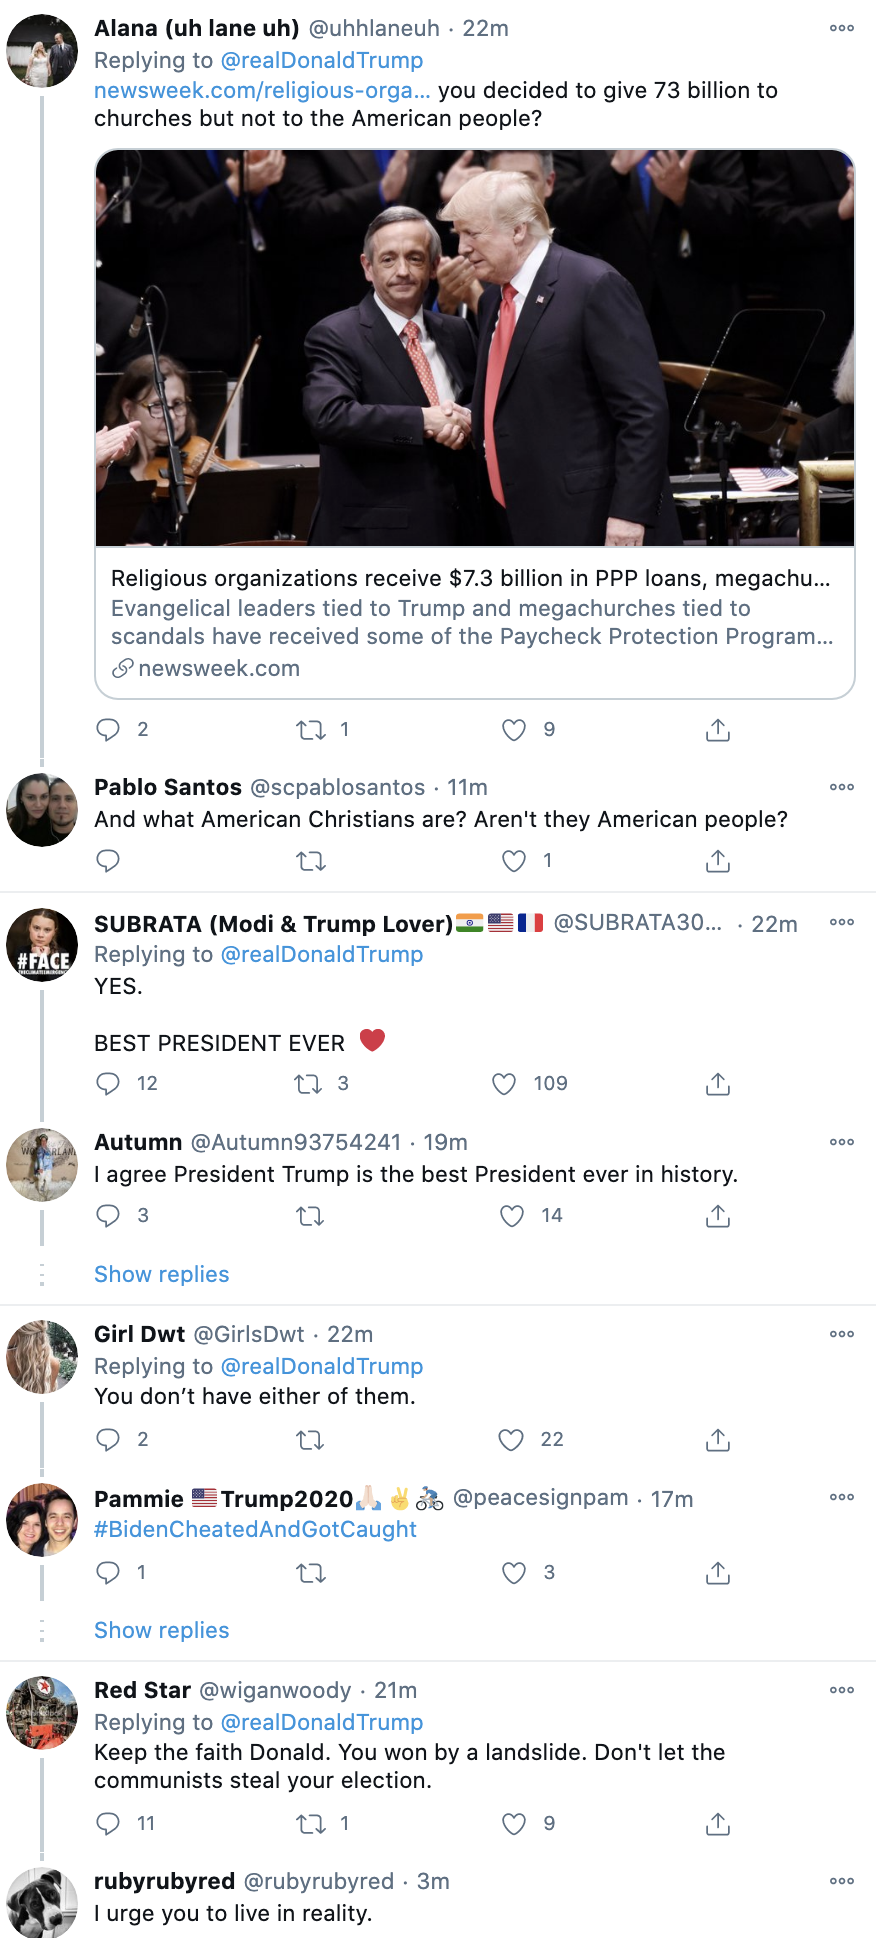 Screen-Shot-2020-12-10-at-8.42.42-AM Trump Yells At SCOTUS During Delirious Early Morning Tweet Frenzy Corruption Crime Featured Politics Top Stories